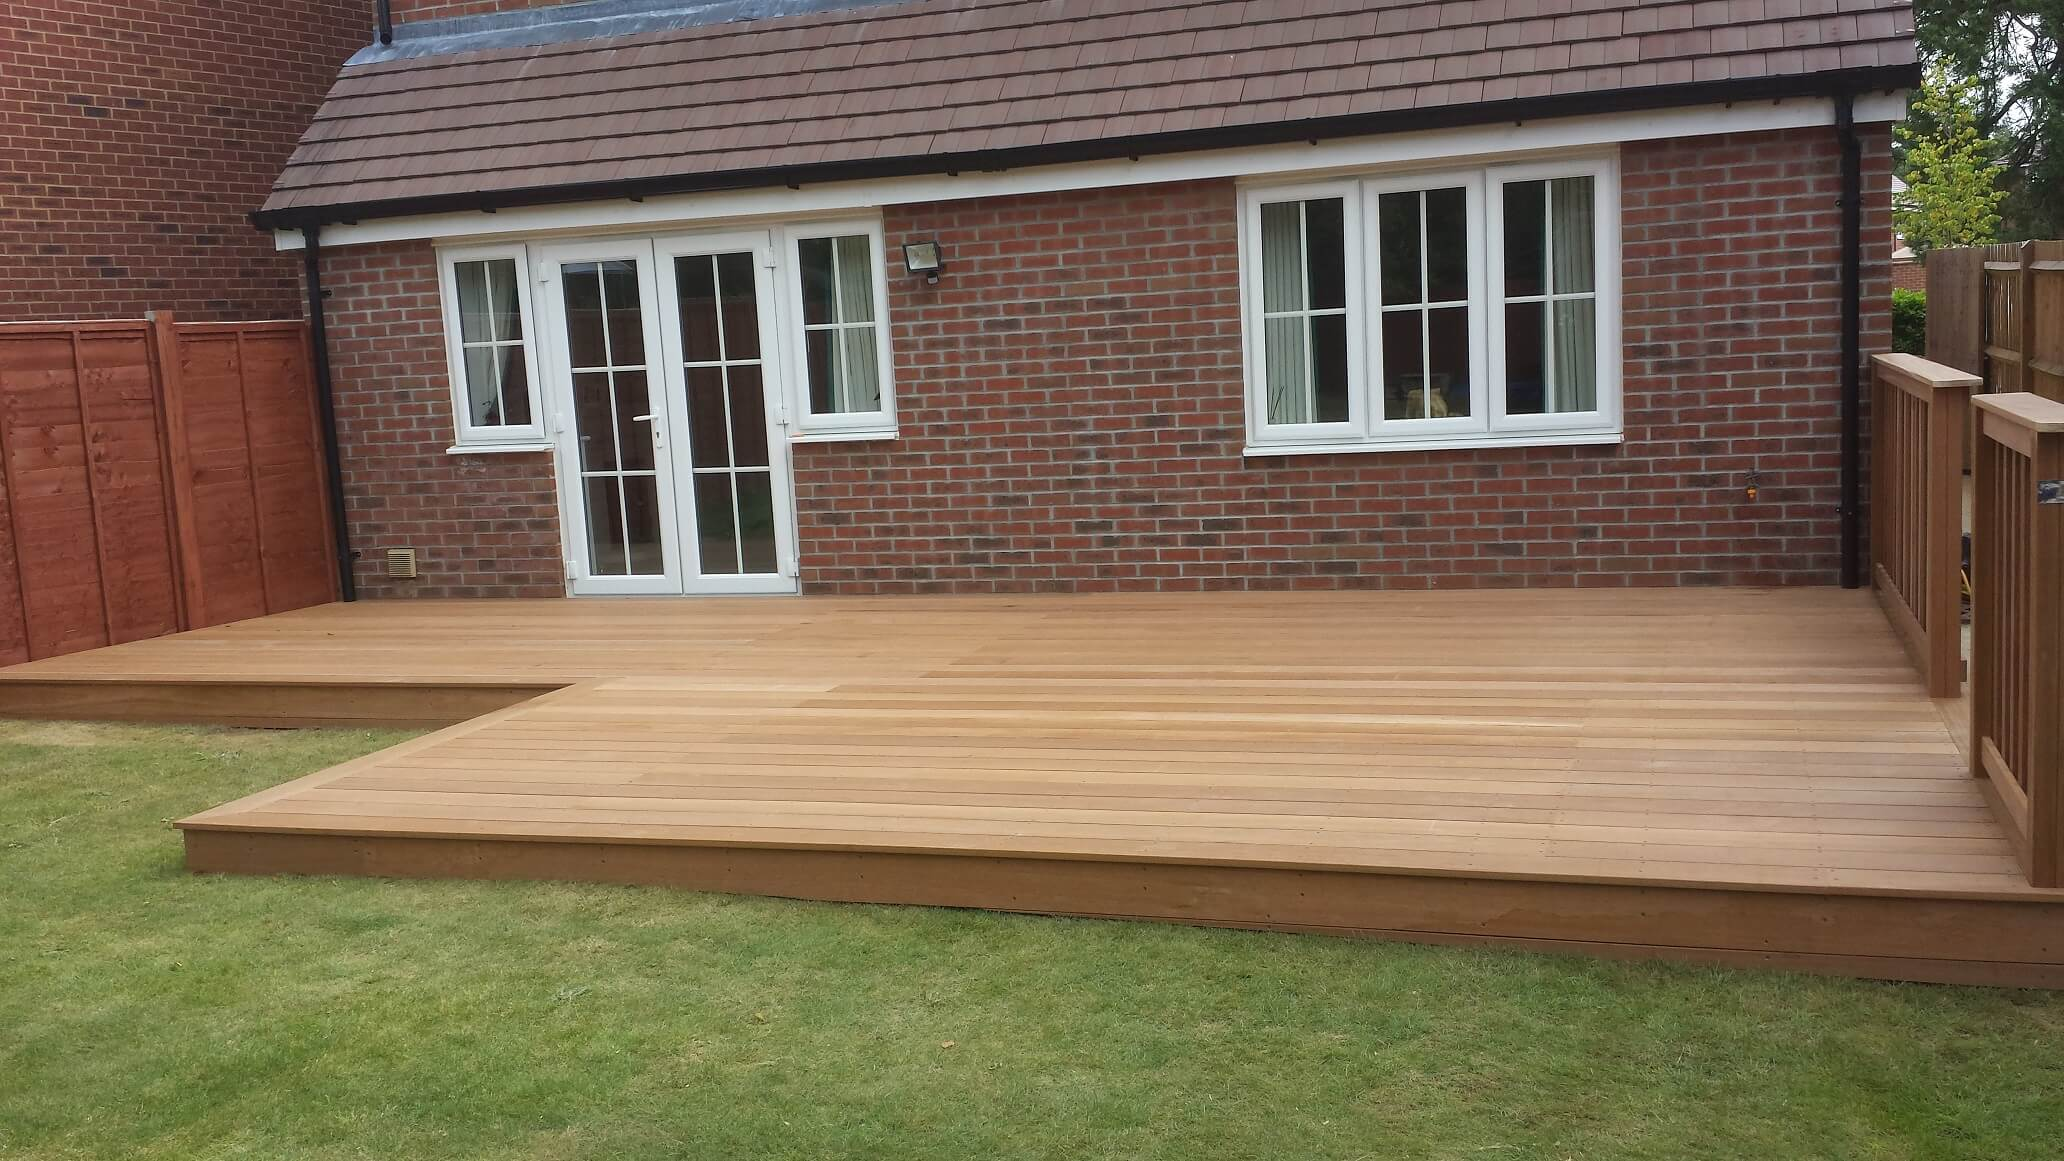 Best Wood For Decking Options